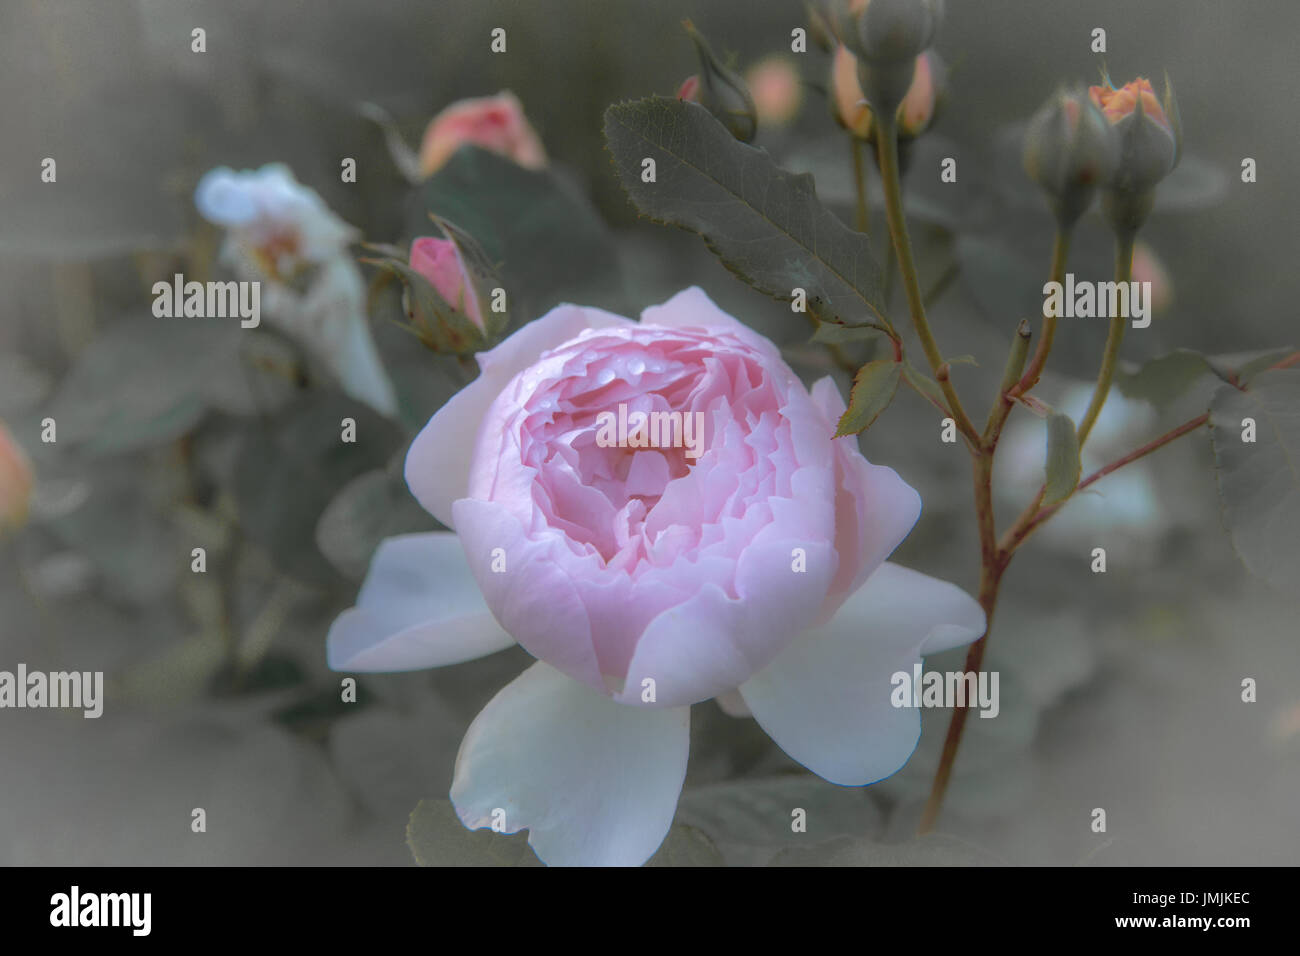 Antique rose garden gardening stock photos antique rose for What colour roses can you get